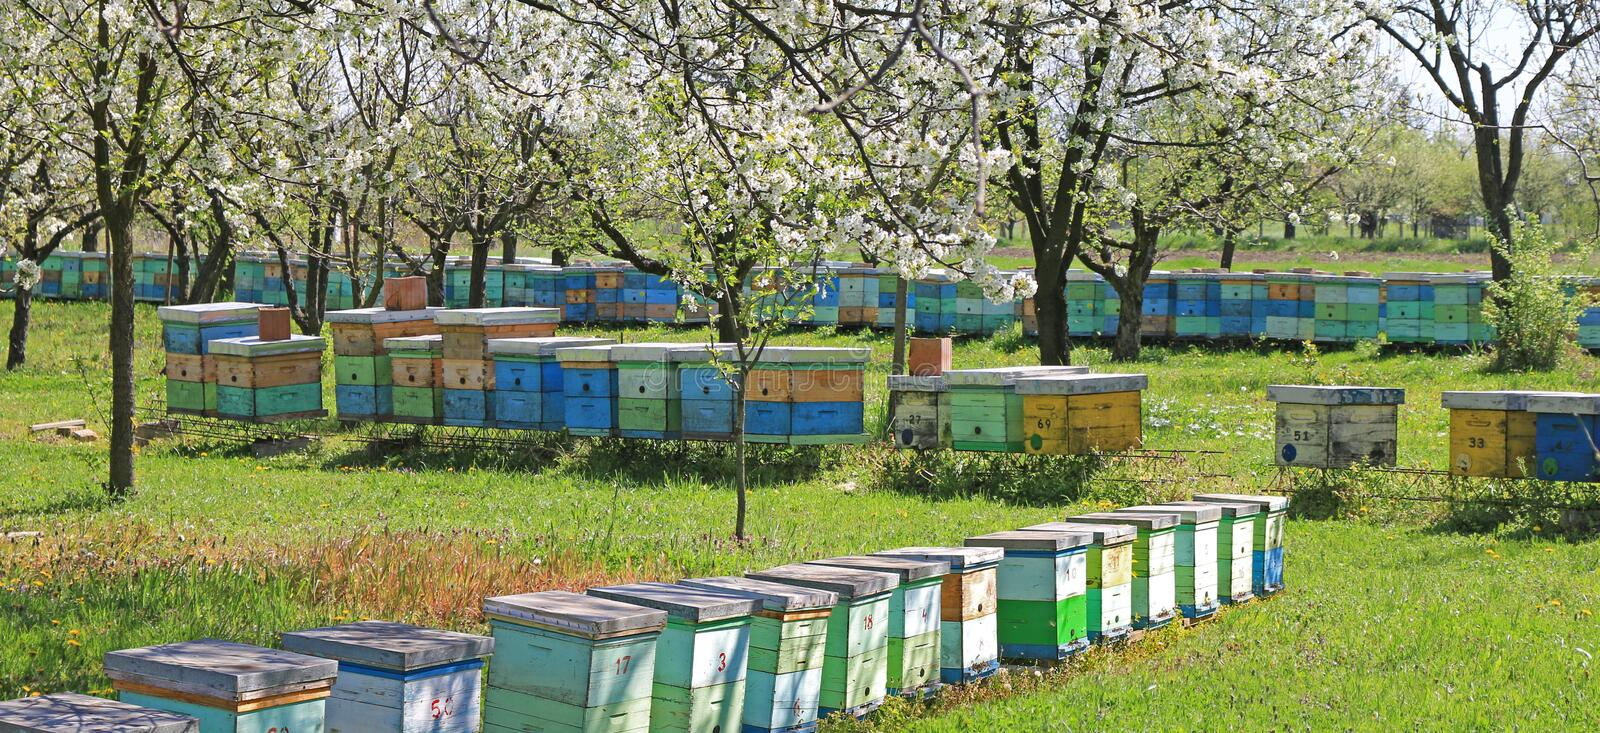 Beekeeping, bees and hives. Beekeeping, beehives in the blooming cherry orchard stock photo